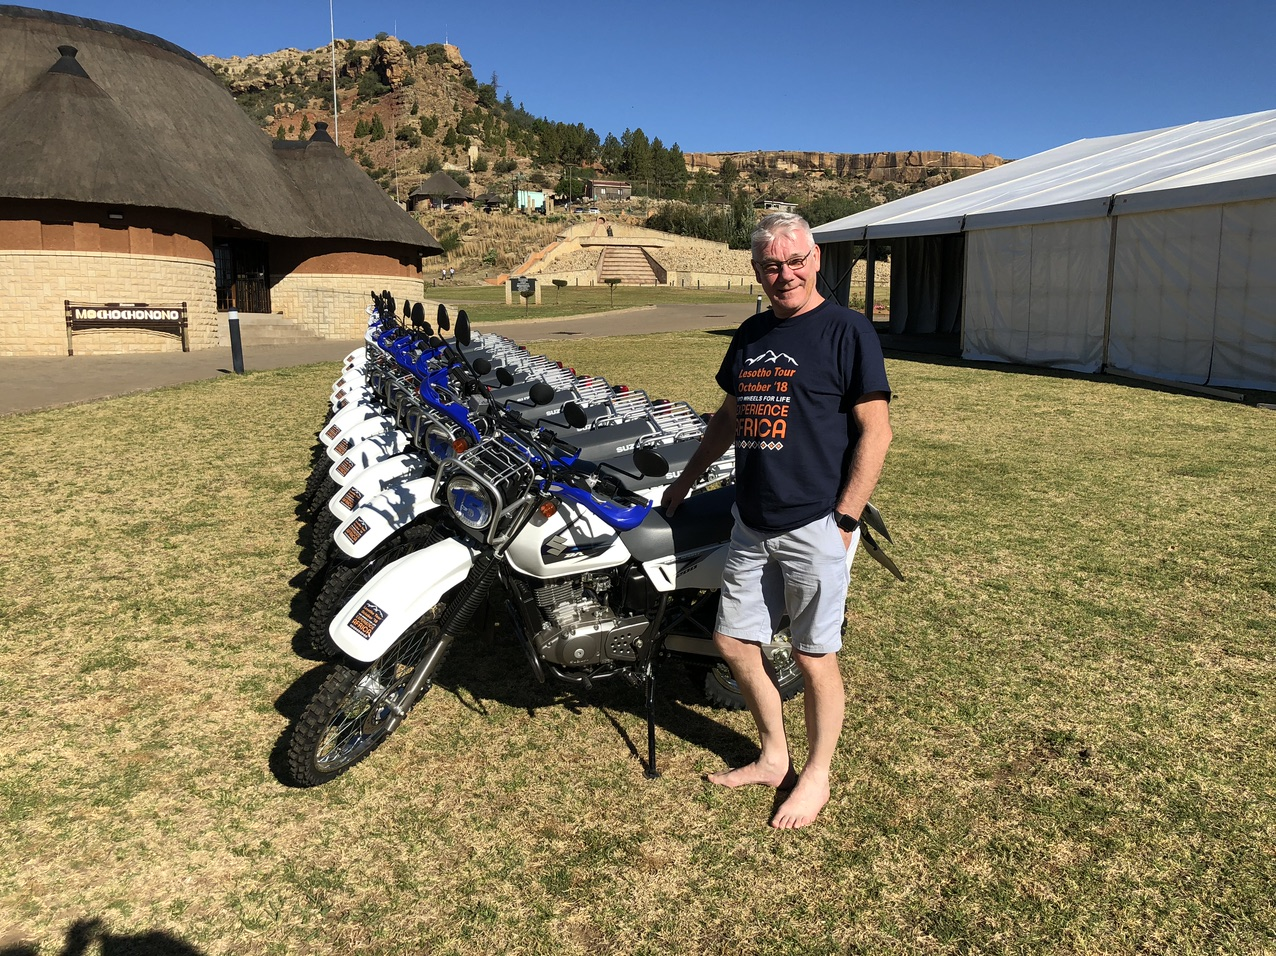 Northumberland company director joins trekking team to deliver new motorcycles to a life-saving programme in Lesotho.